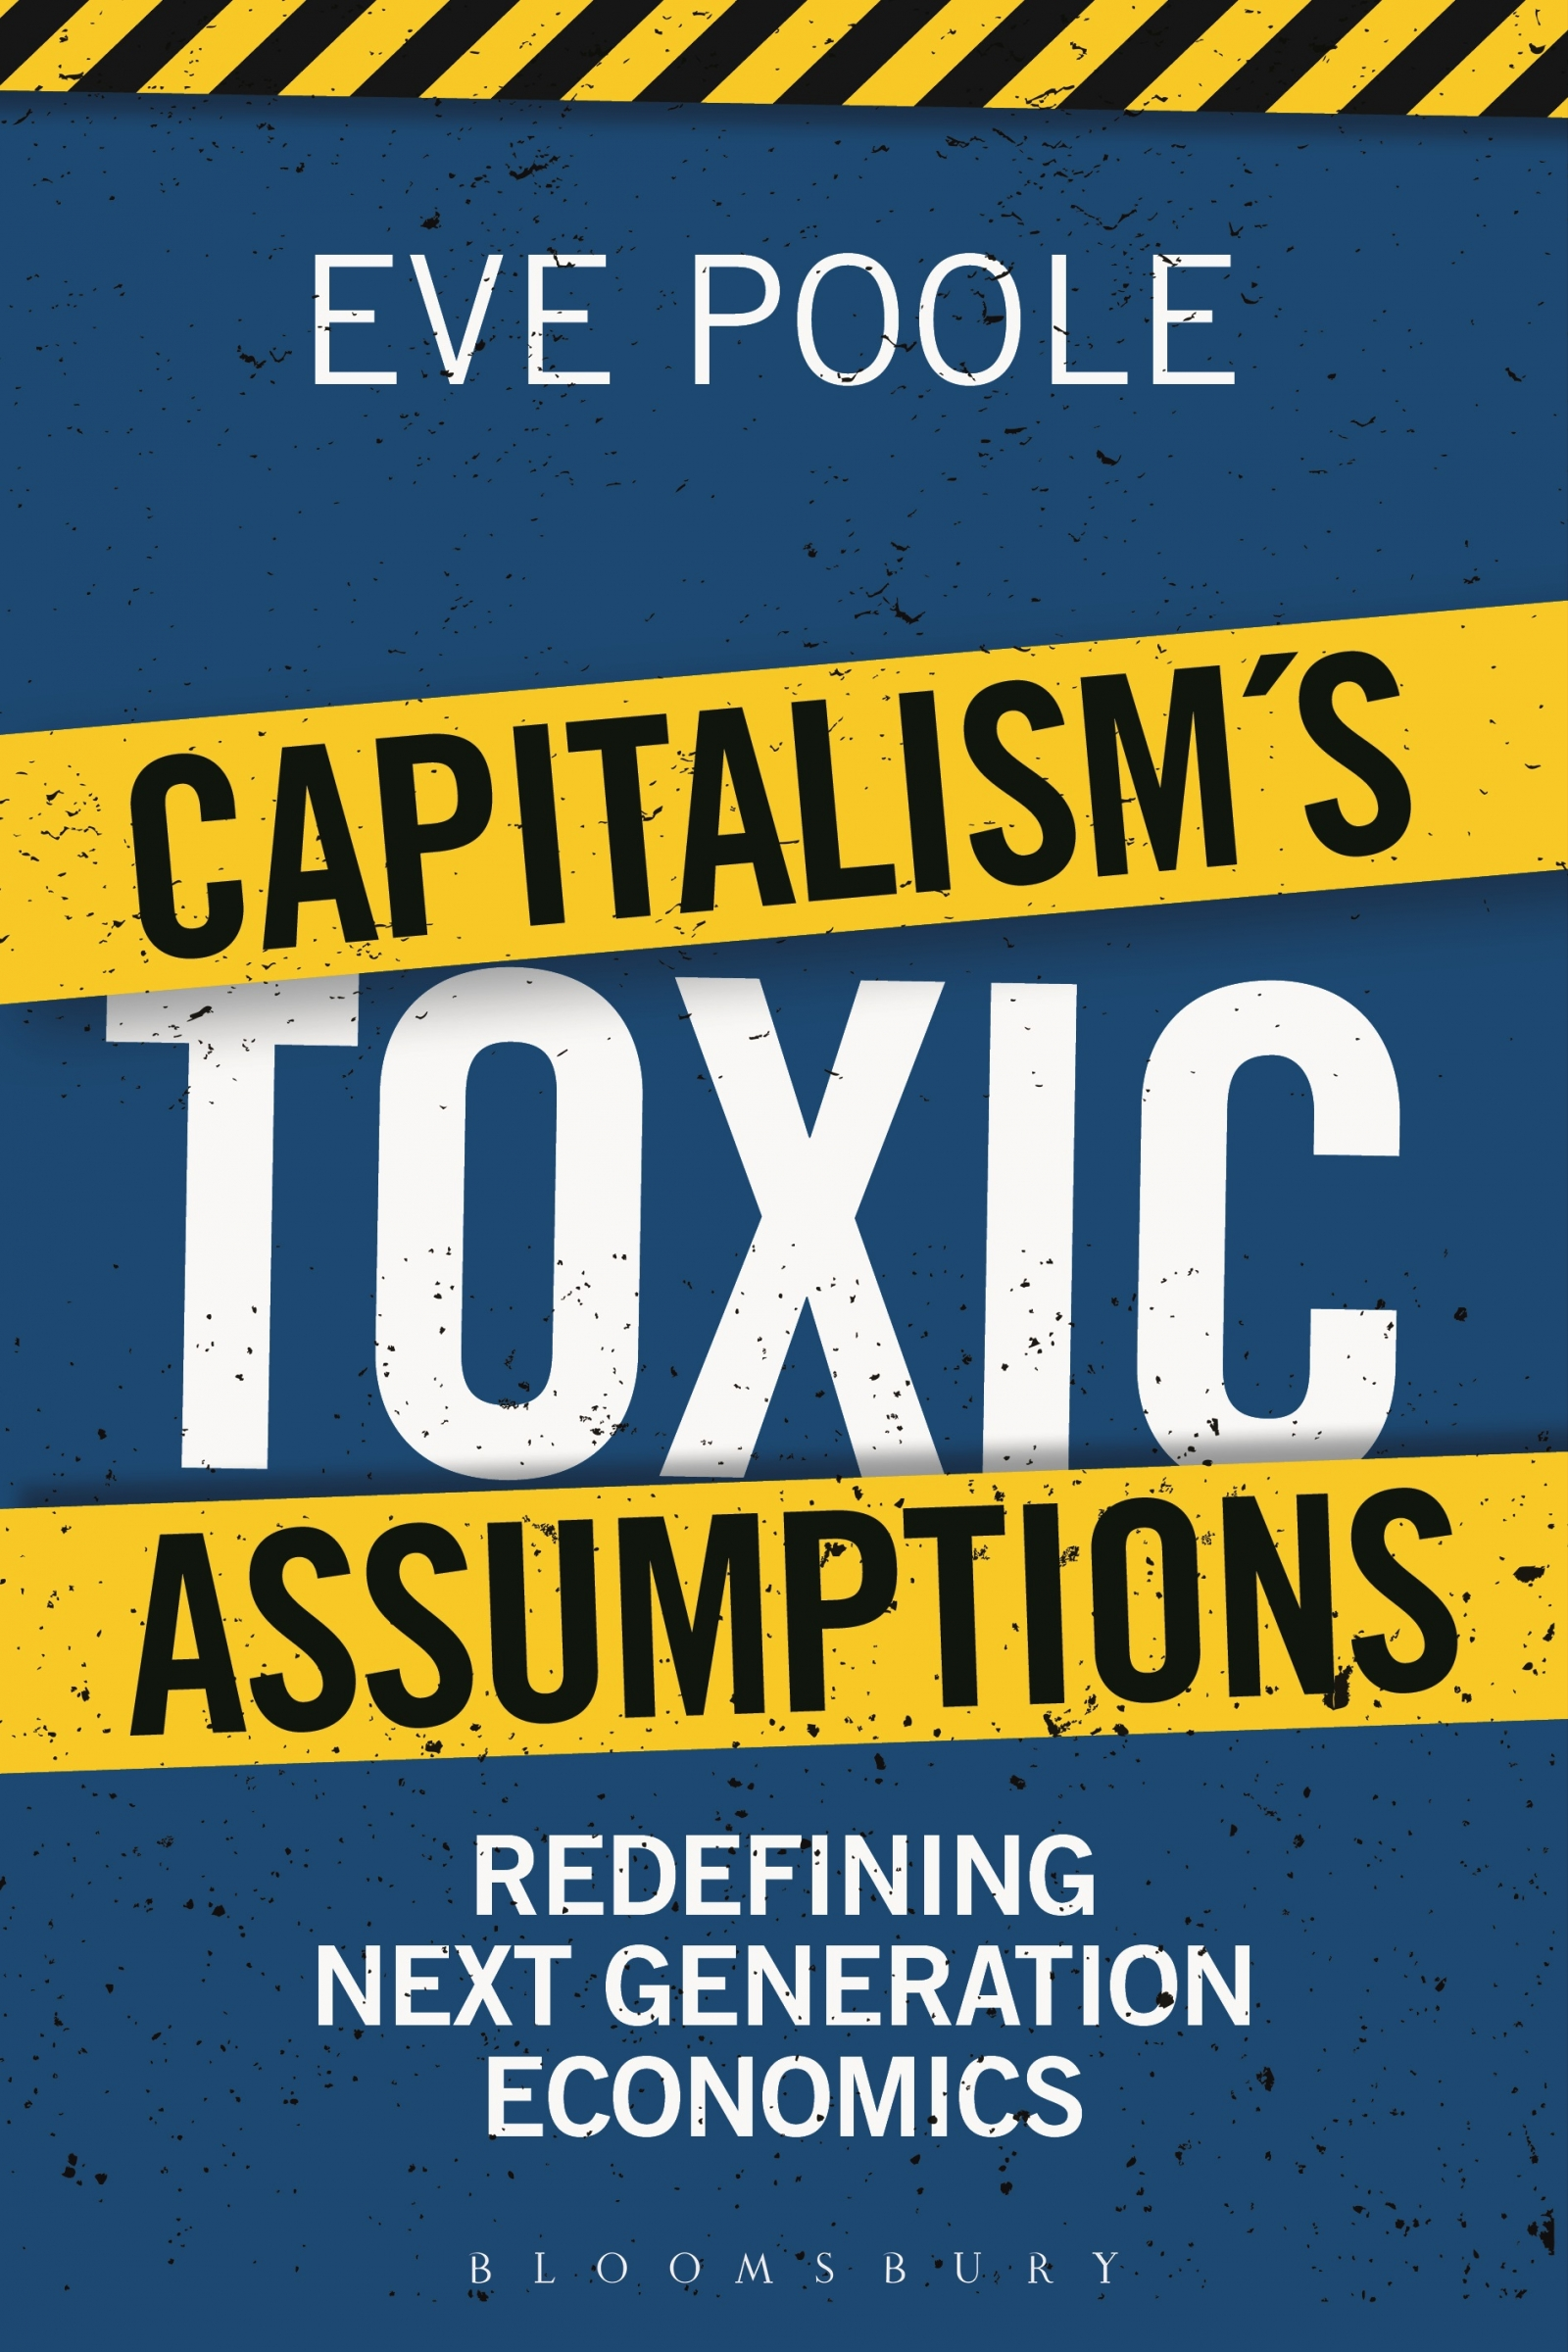 Capitalism's Toxic Assumptions Eve Poole